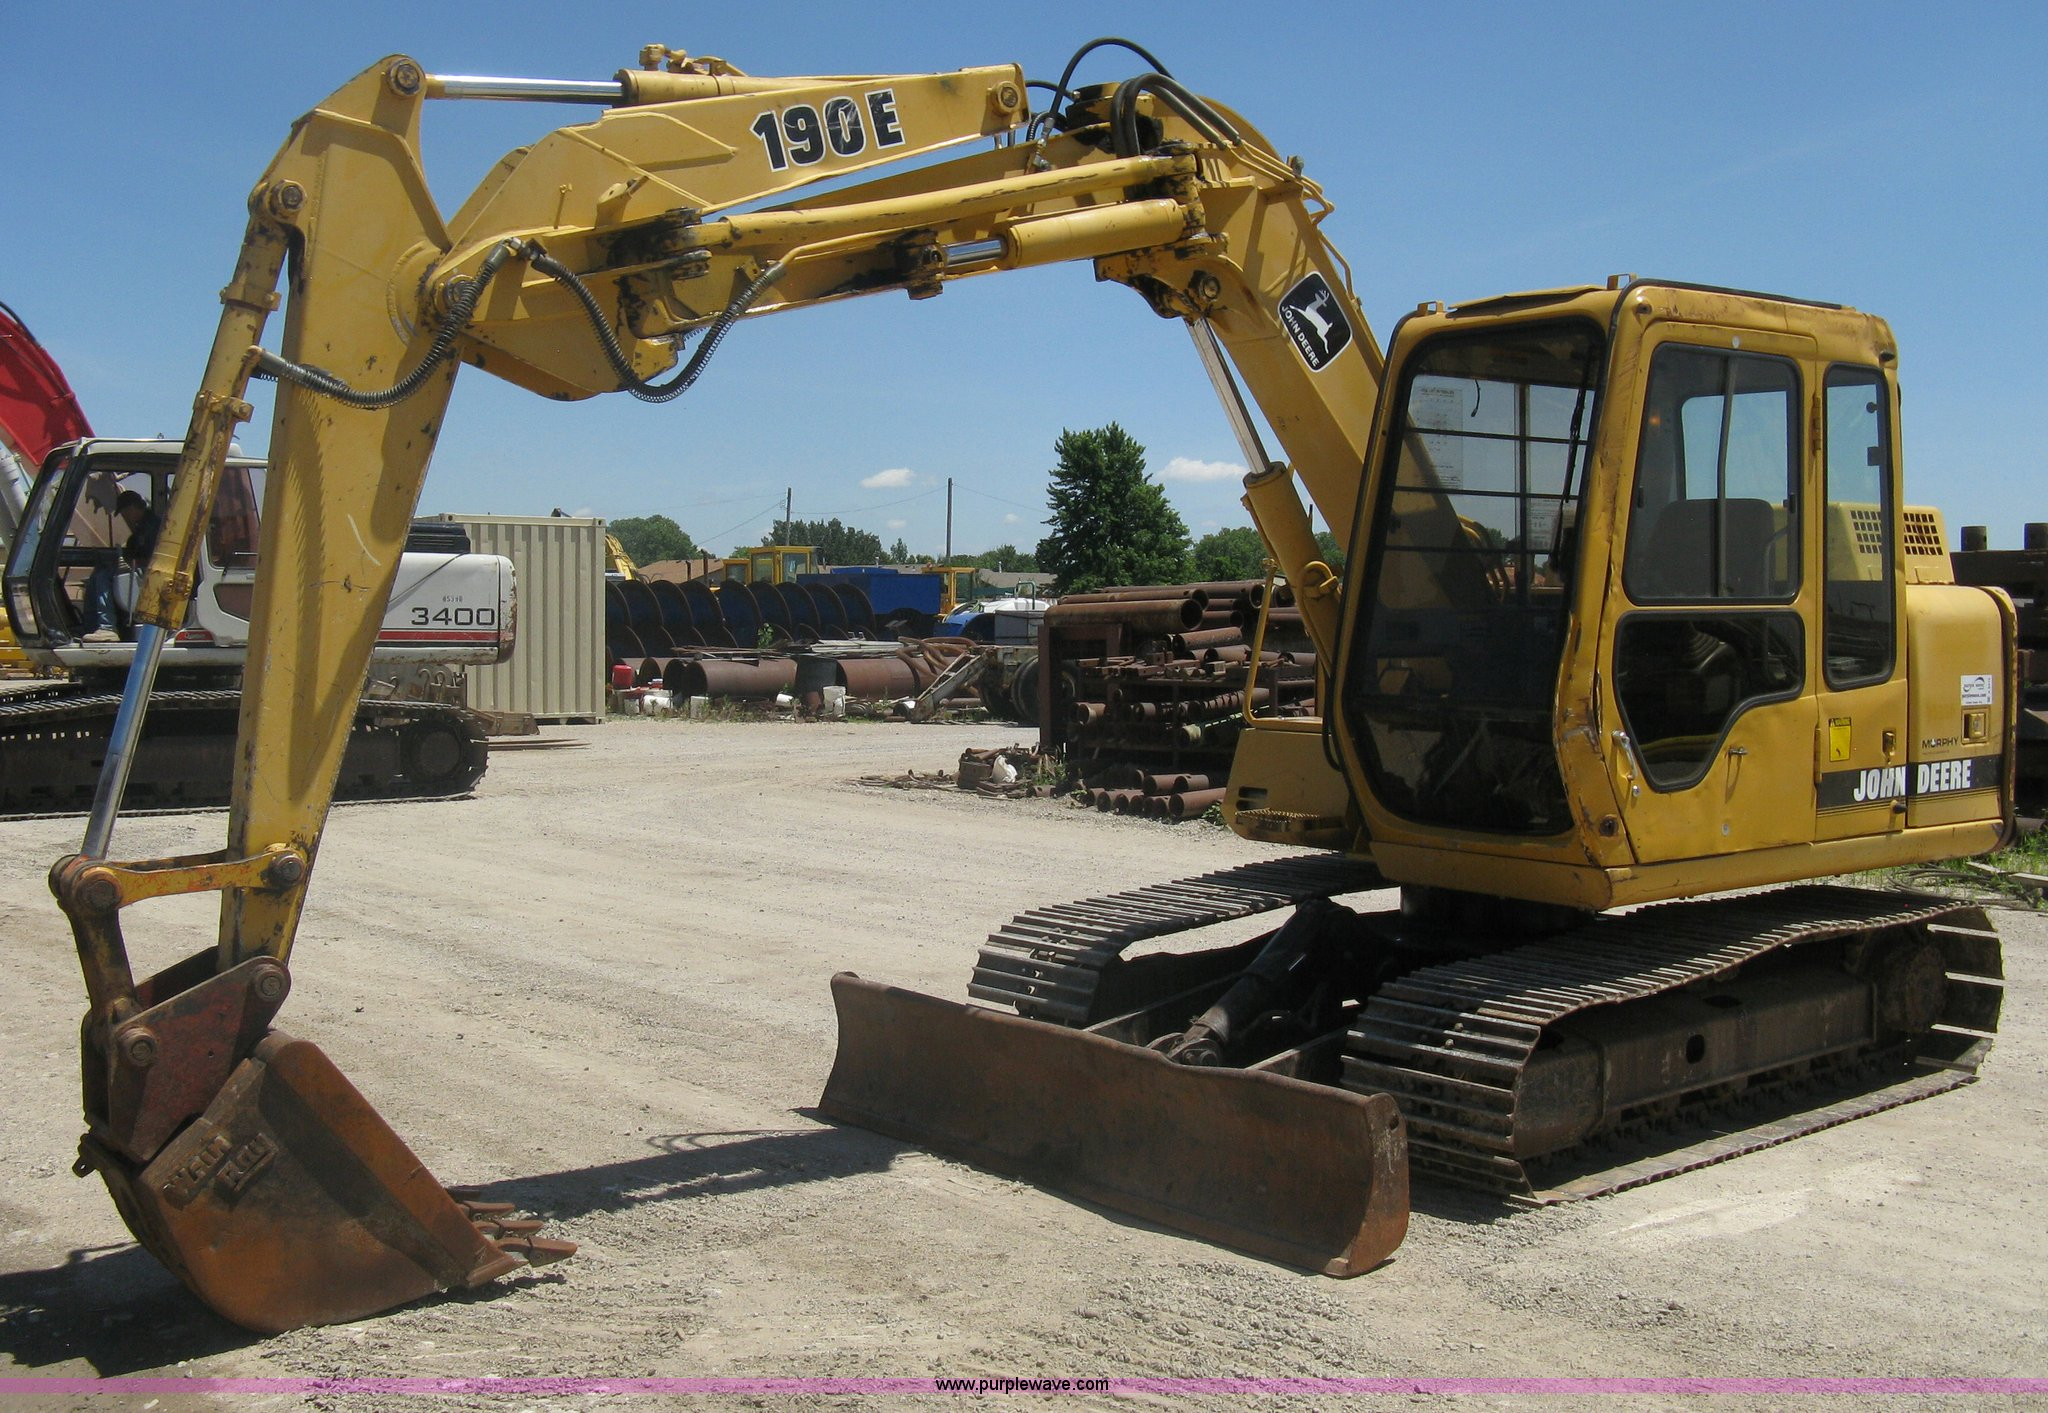 A6412 image for item A6412 1996 John Deere 190E excavator